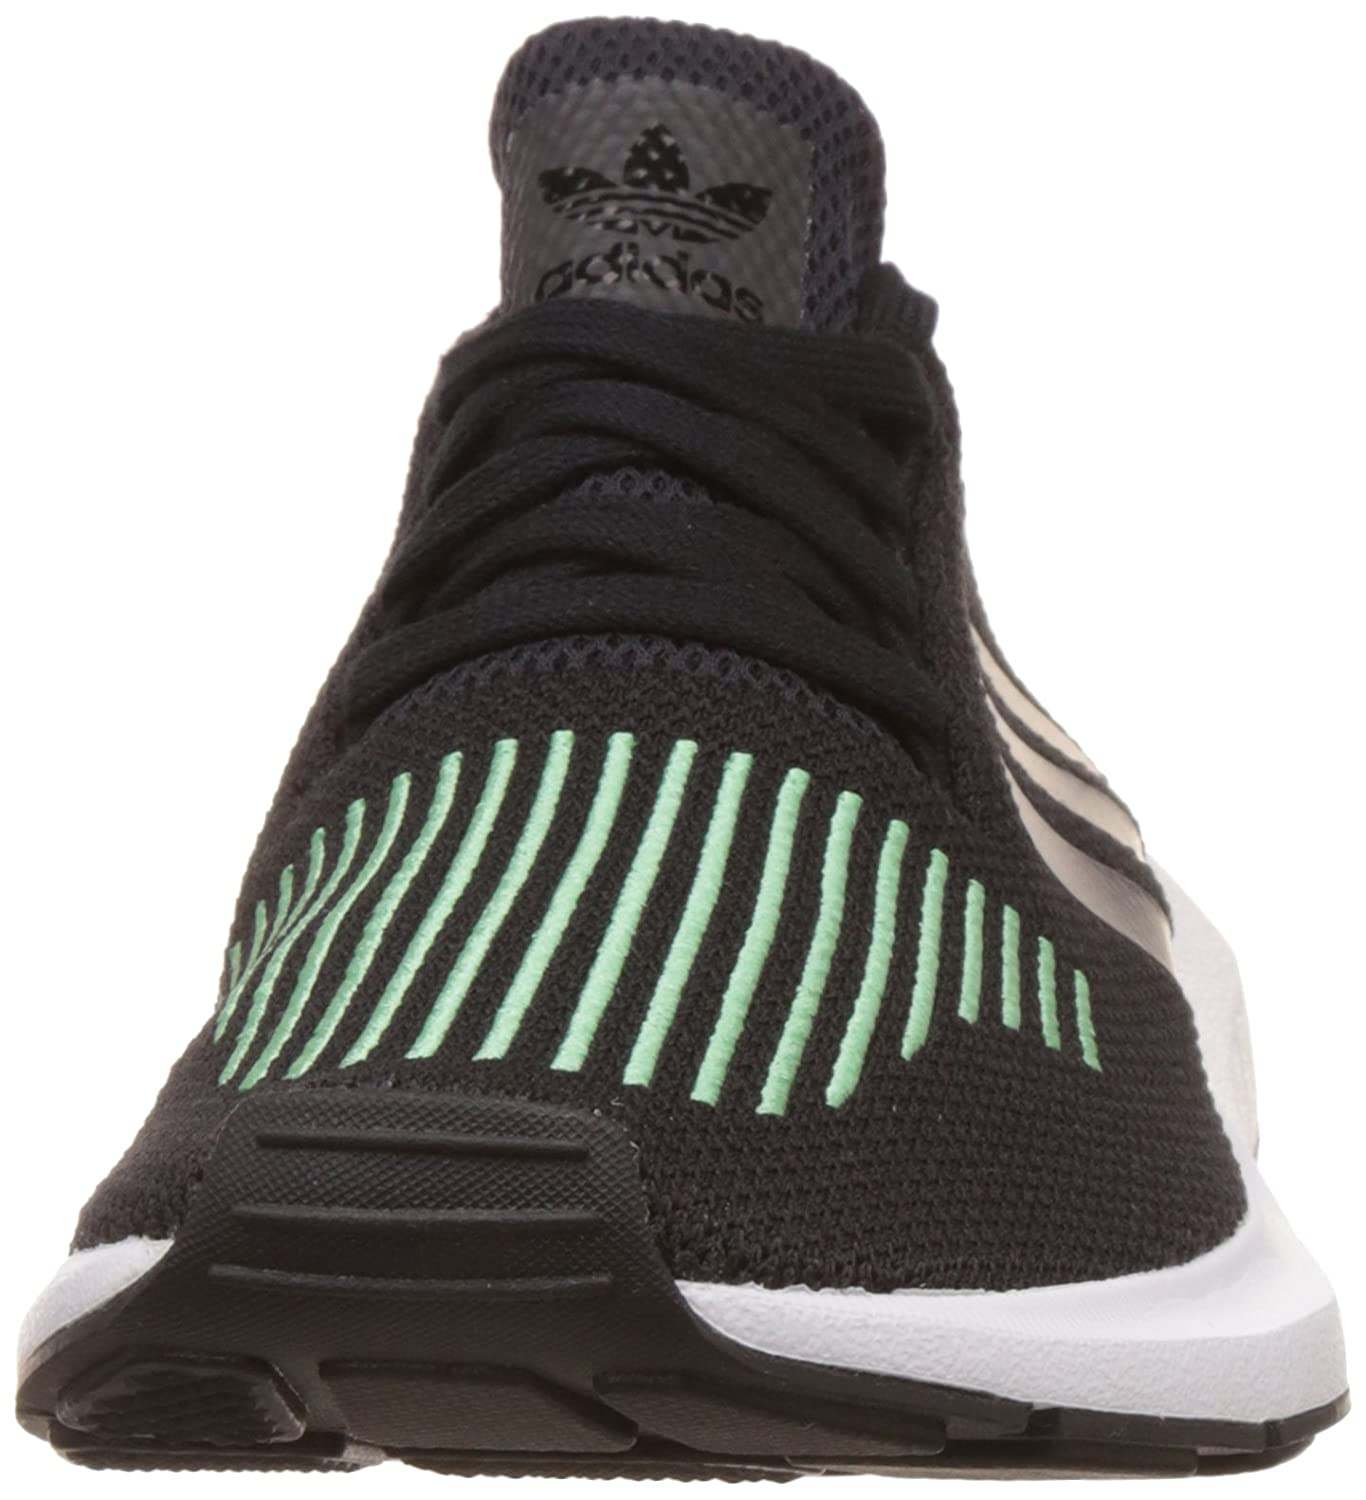 new arrival 25c90 76e10 Adidas Men s Swift Run Sneakers  Buy Online at Low Prices in India -  Amazon.in